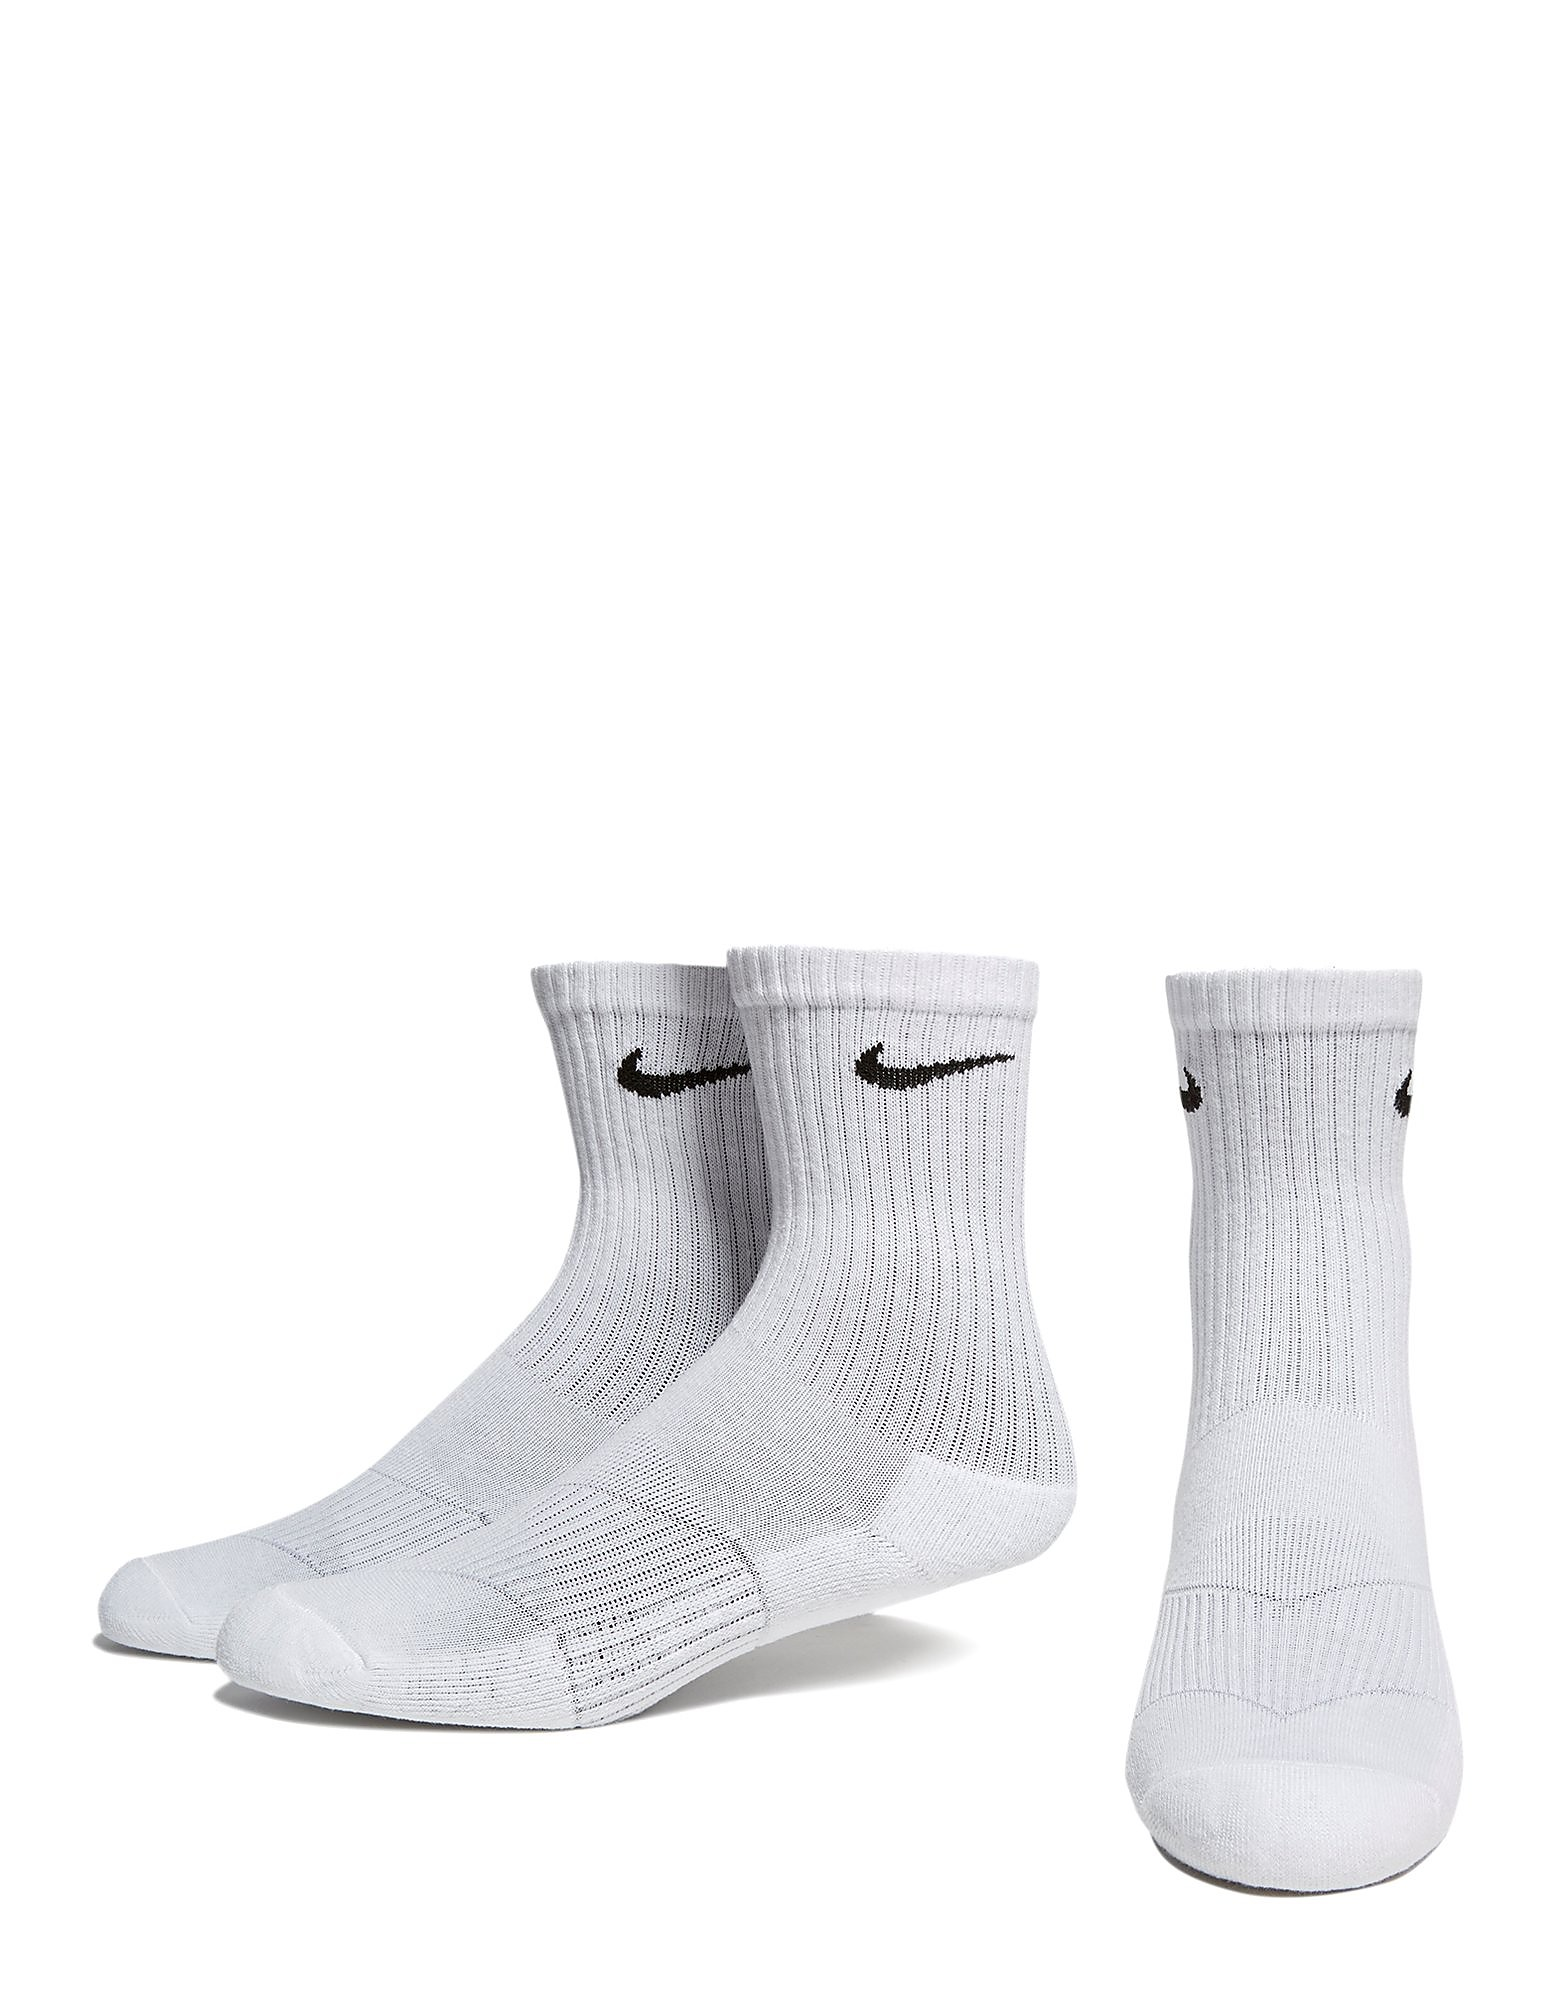 Nike Crew Sock i 3-pack för junior